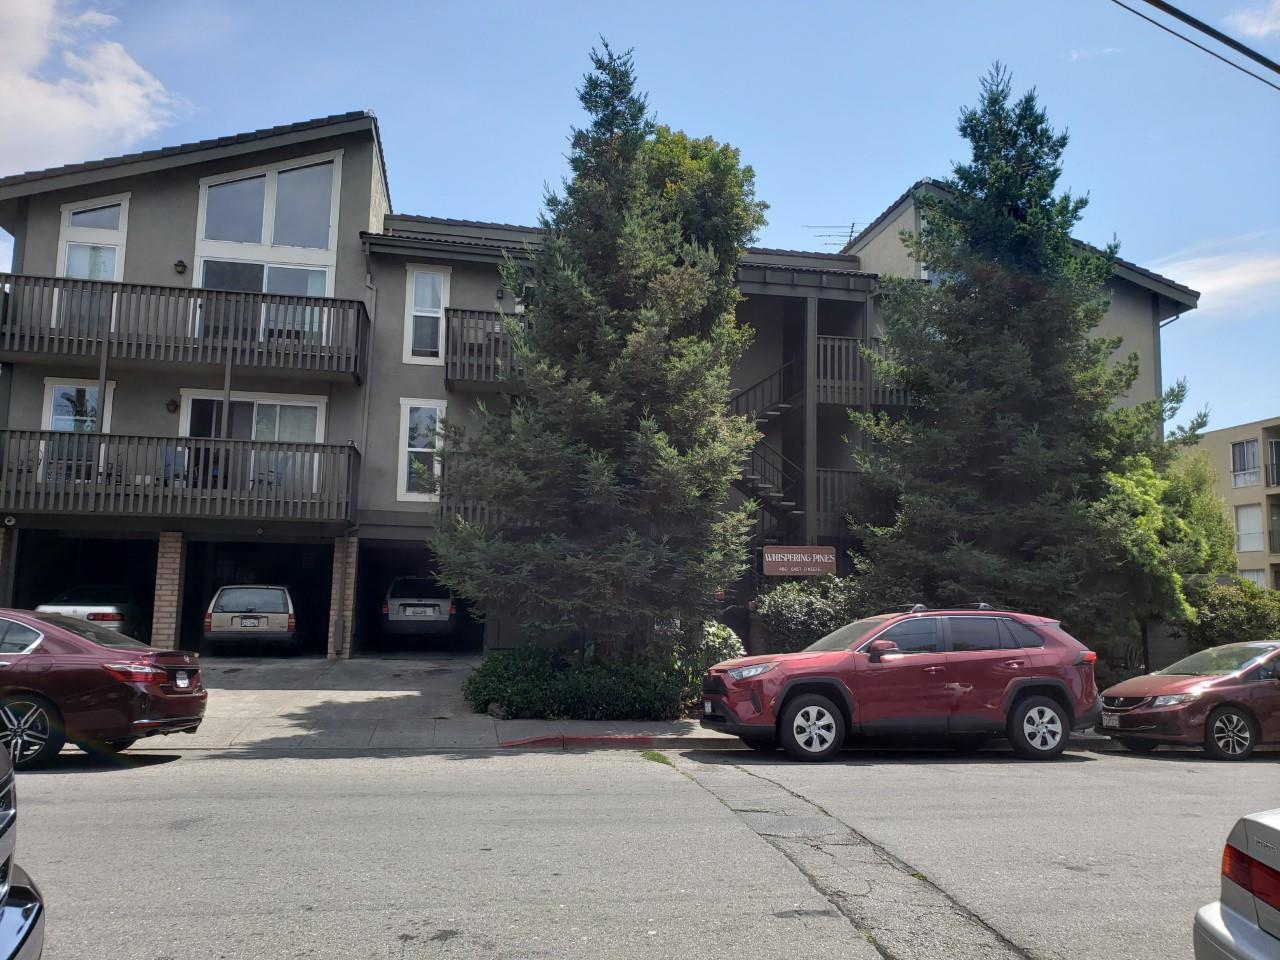 INVESTORS ONLY. TENANT IN PLACE>  A TRUST SALE. NO COURT CONFIRMATION NEEDED. CALL AGENT FOR MORE DETAILS. CLOSE TO STANFORD AND DOWNTOWN PALO ALTO. PUBLIC TRANSPORTATION. GOOD RENTAL PROPERTY.